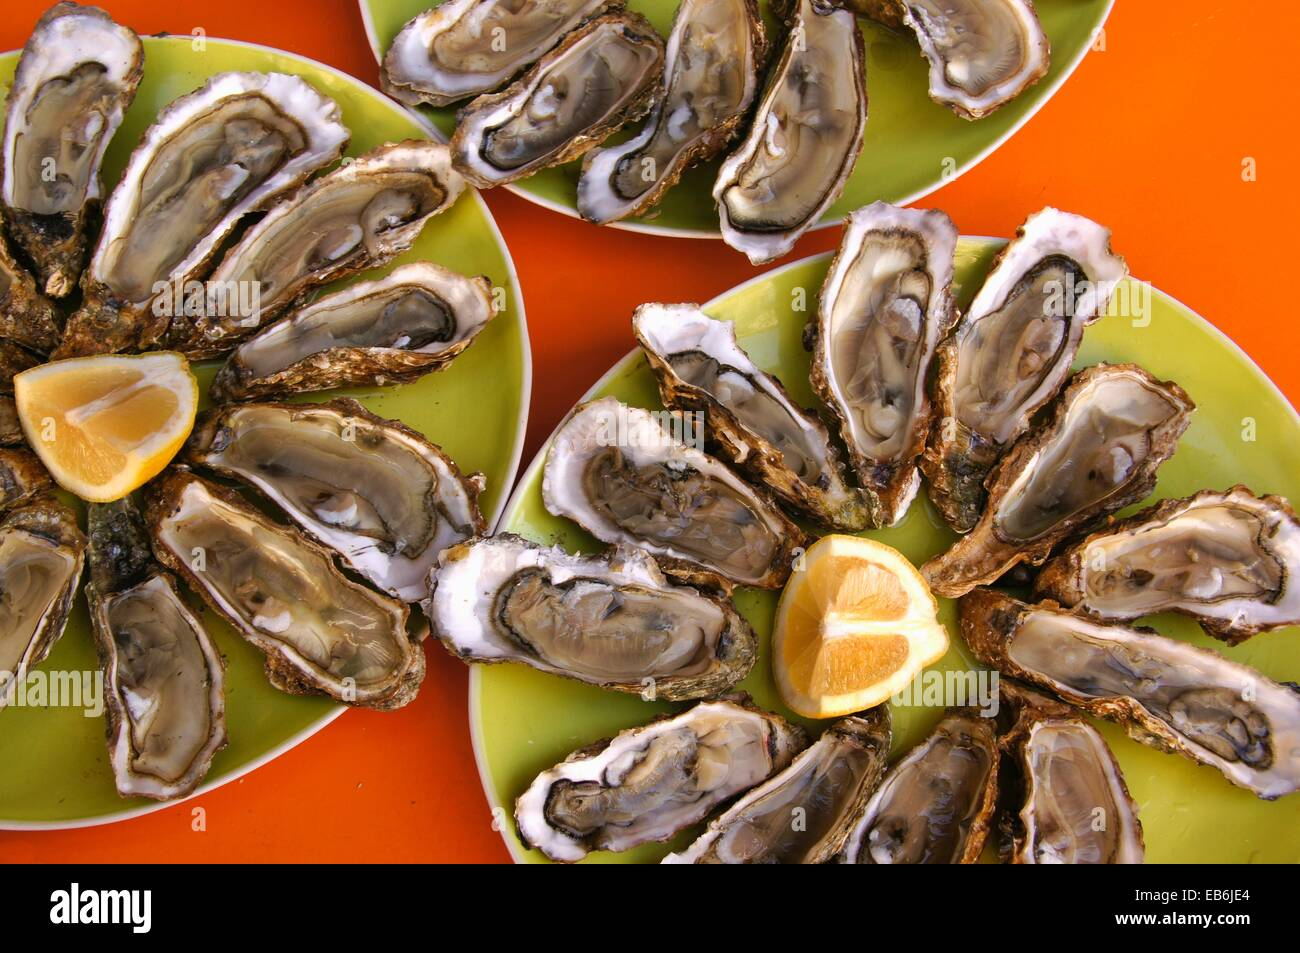 france aquitaine gironde food huitres oysters from